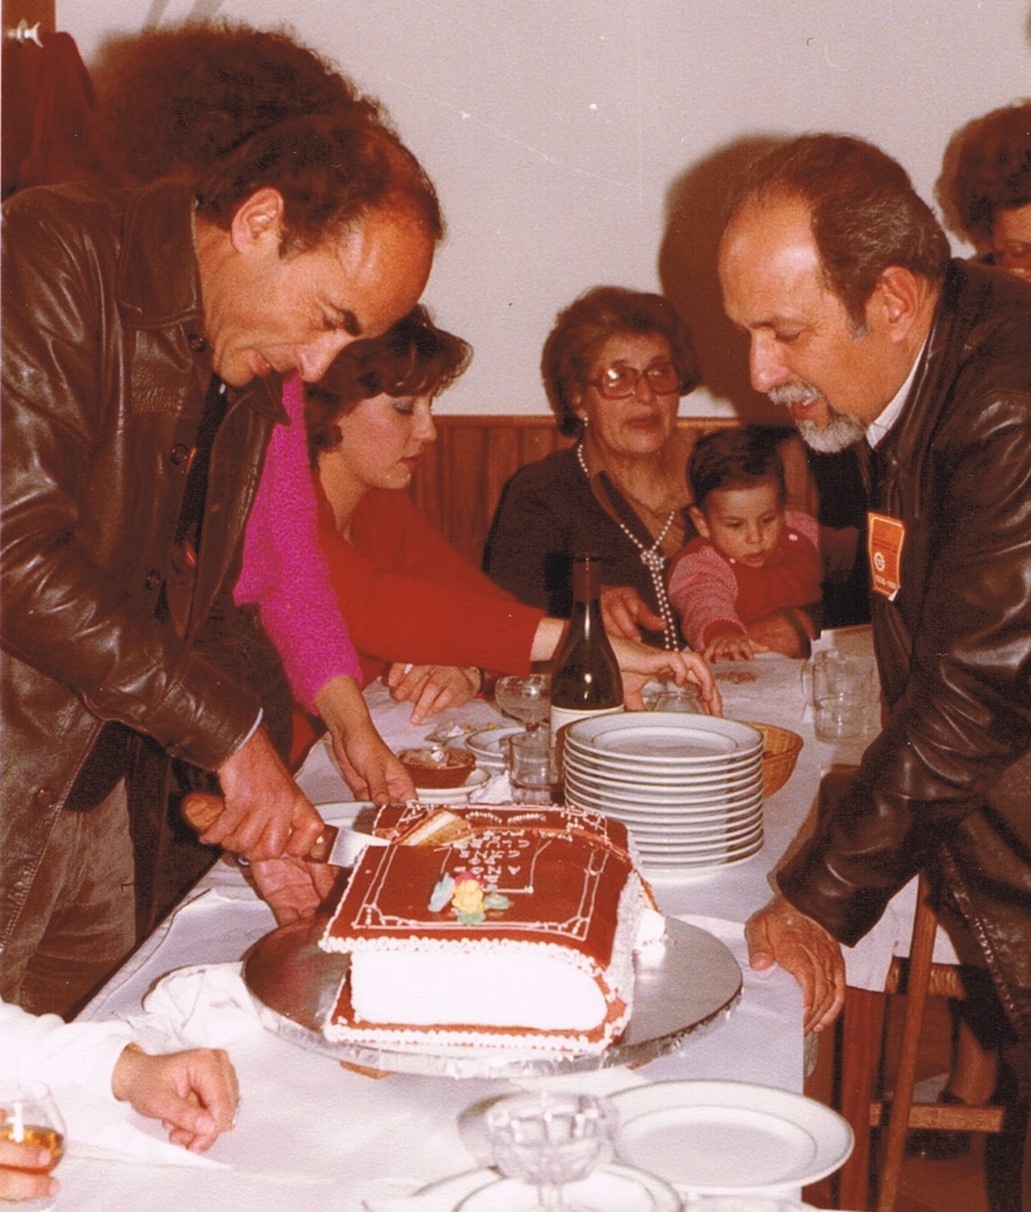 Alberto Mendonça Neves e Morgado André no 25º Aniversário do Cineclube Abril 1981